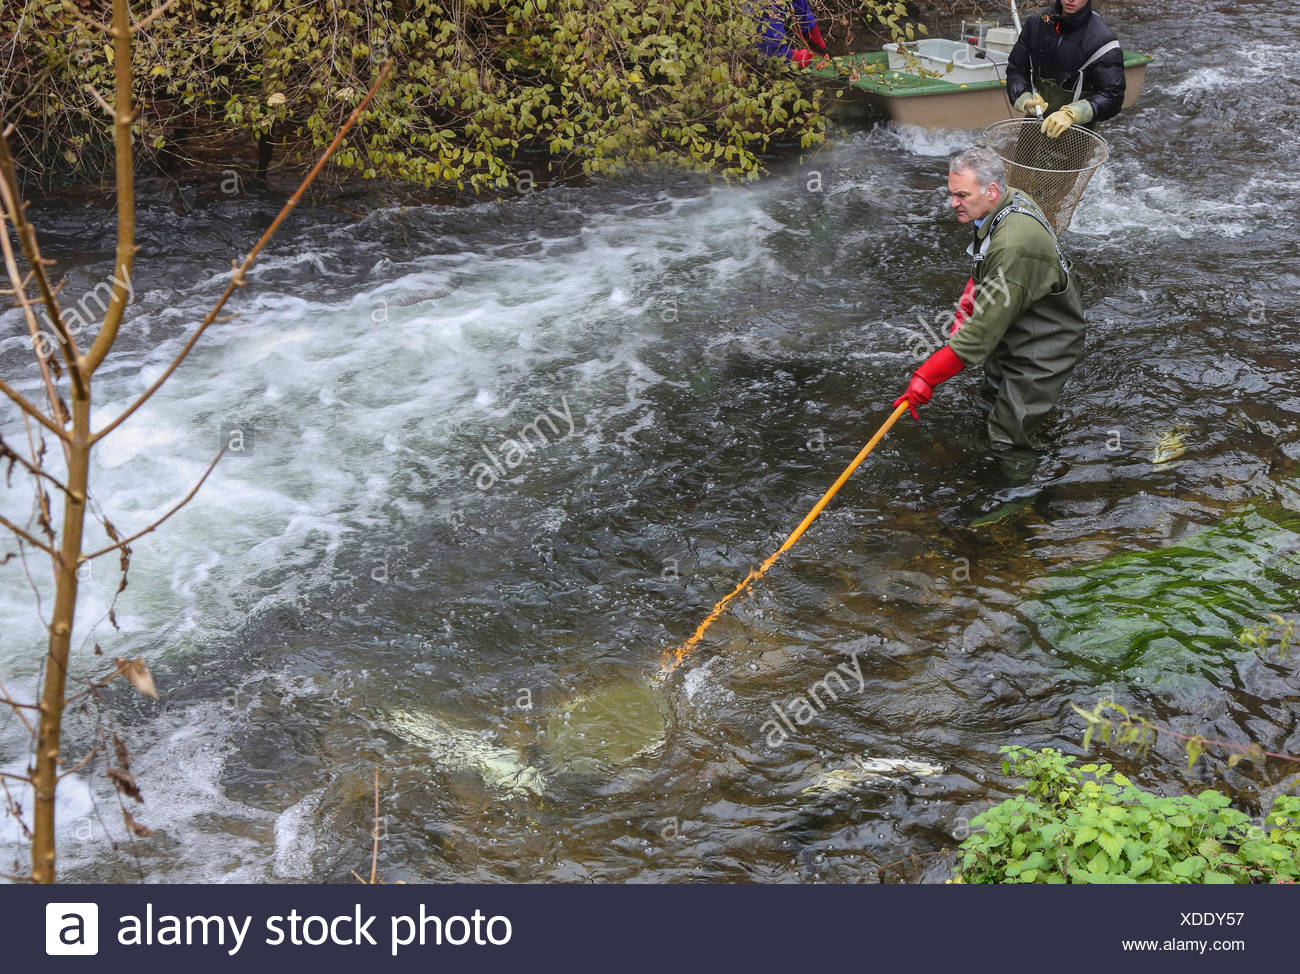 electrofishing in a river for population control, Germany - Stock Image